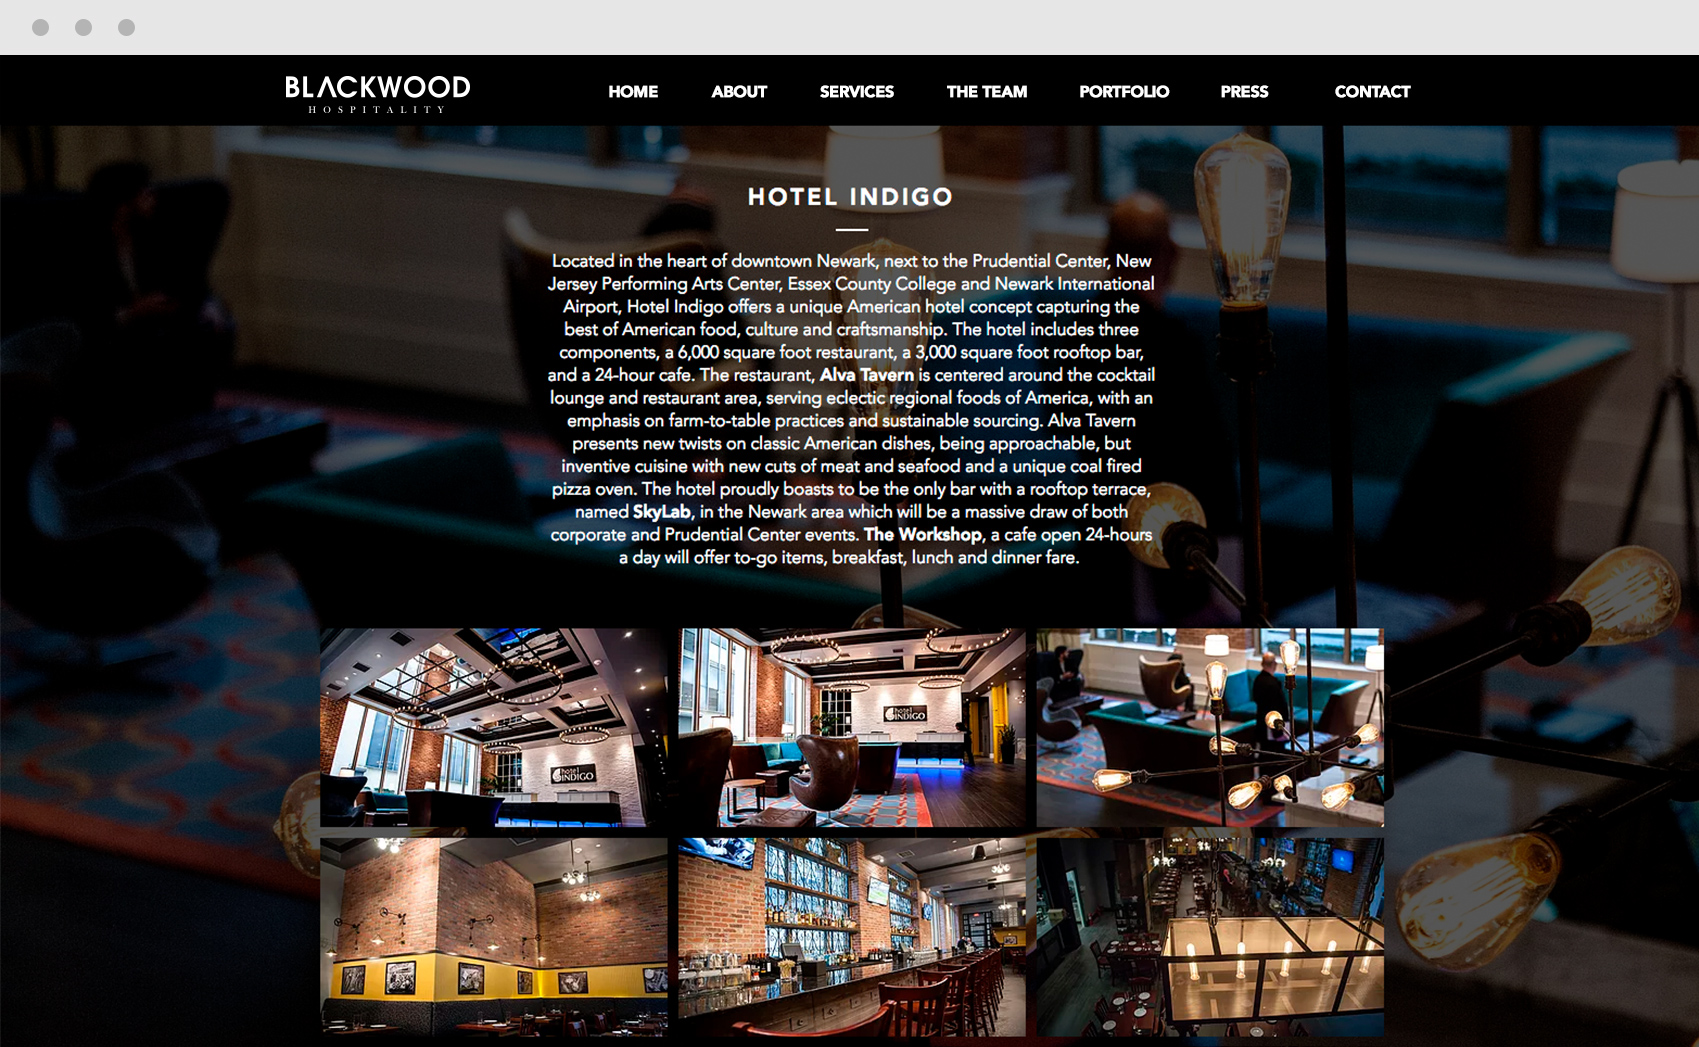 Hotel Indigo Location and Summary by Blackwood Hospitality NYC